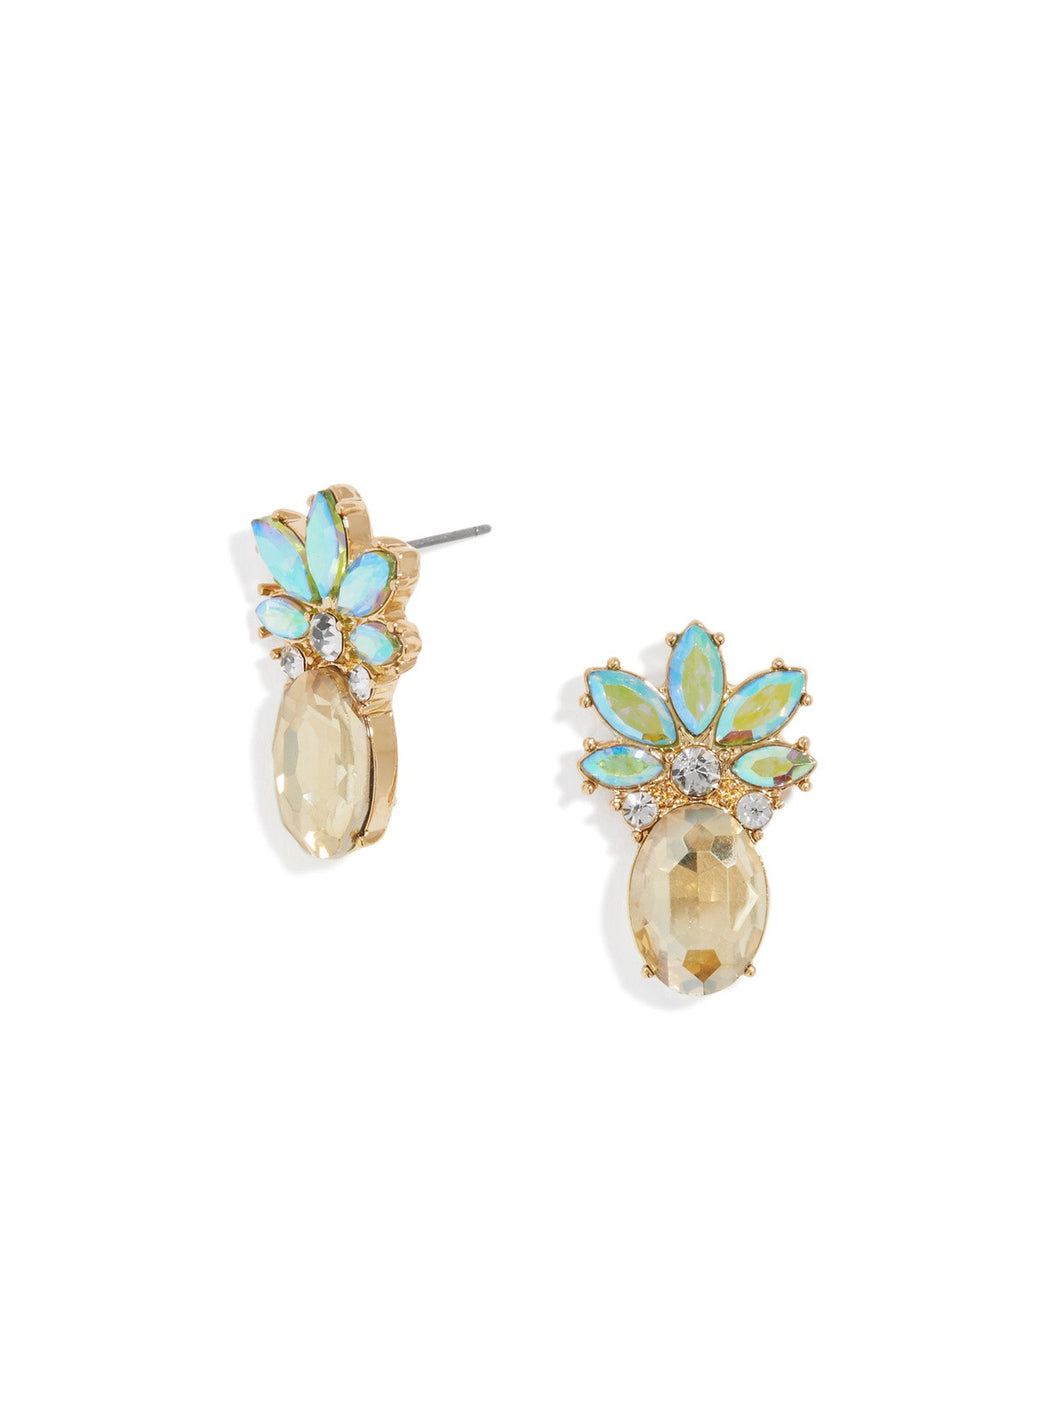 Swarovski Crystal 18K Gold Plated Pinapple Stud Earring